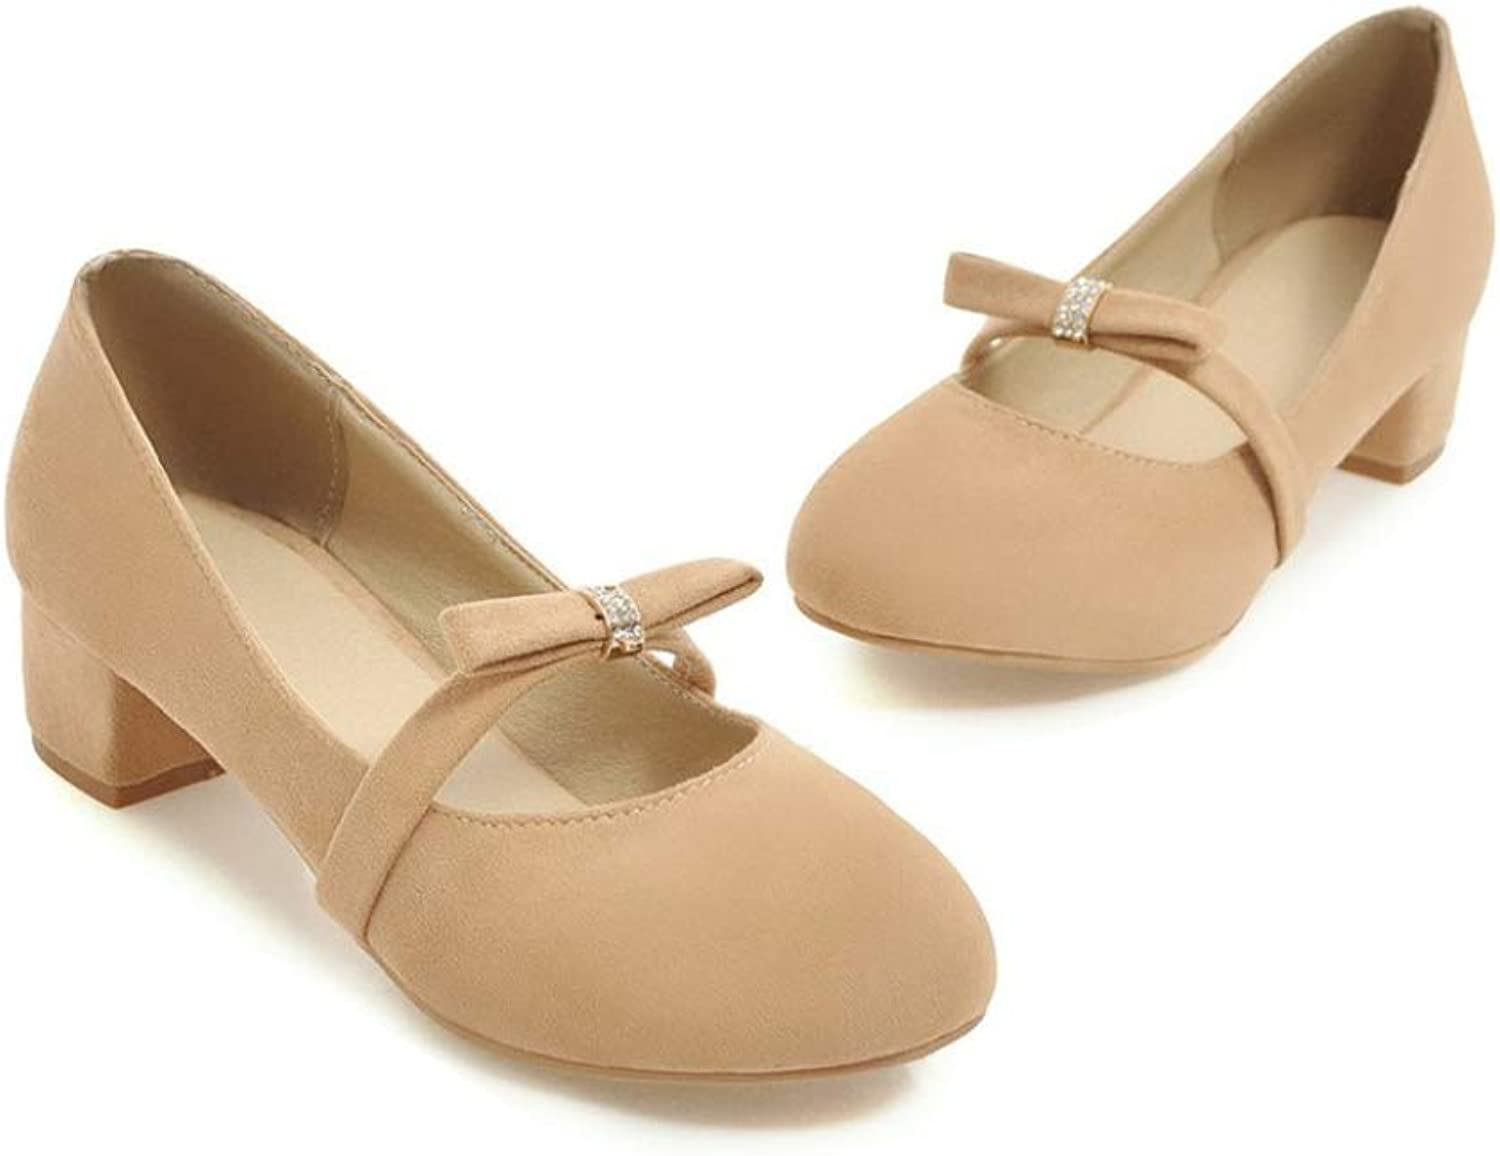 Women High Heel shoes Round Toe Shallow Sweet Pumps with Butterfly Knot Slip On Sandals Casual Fashion